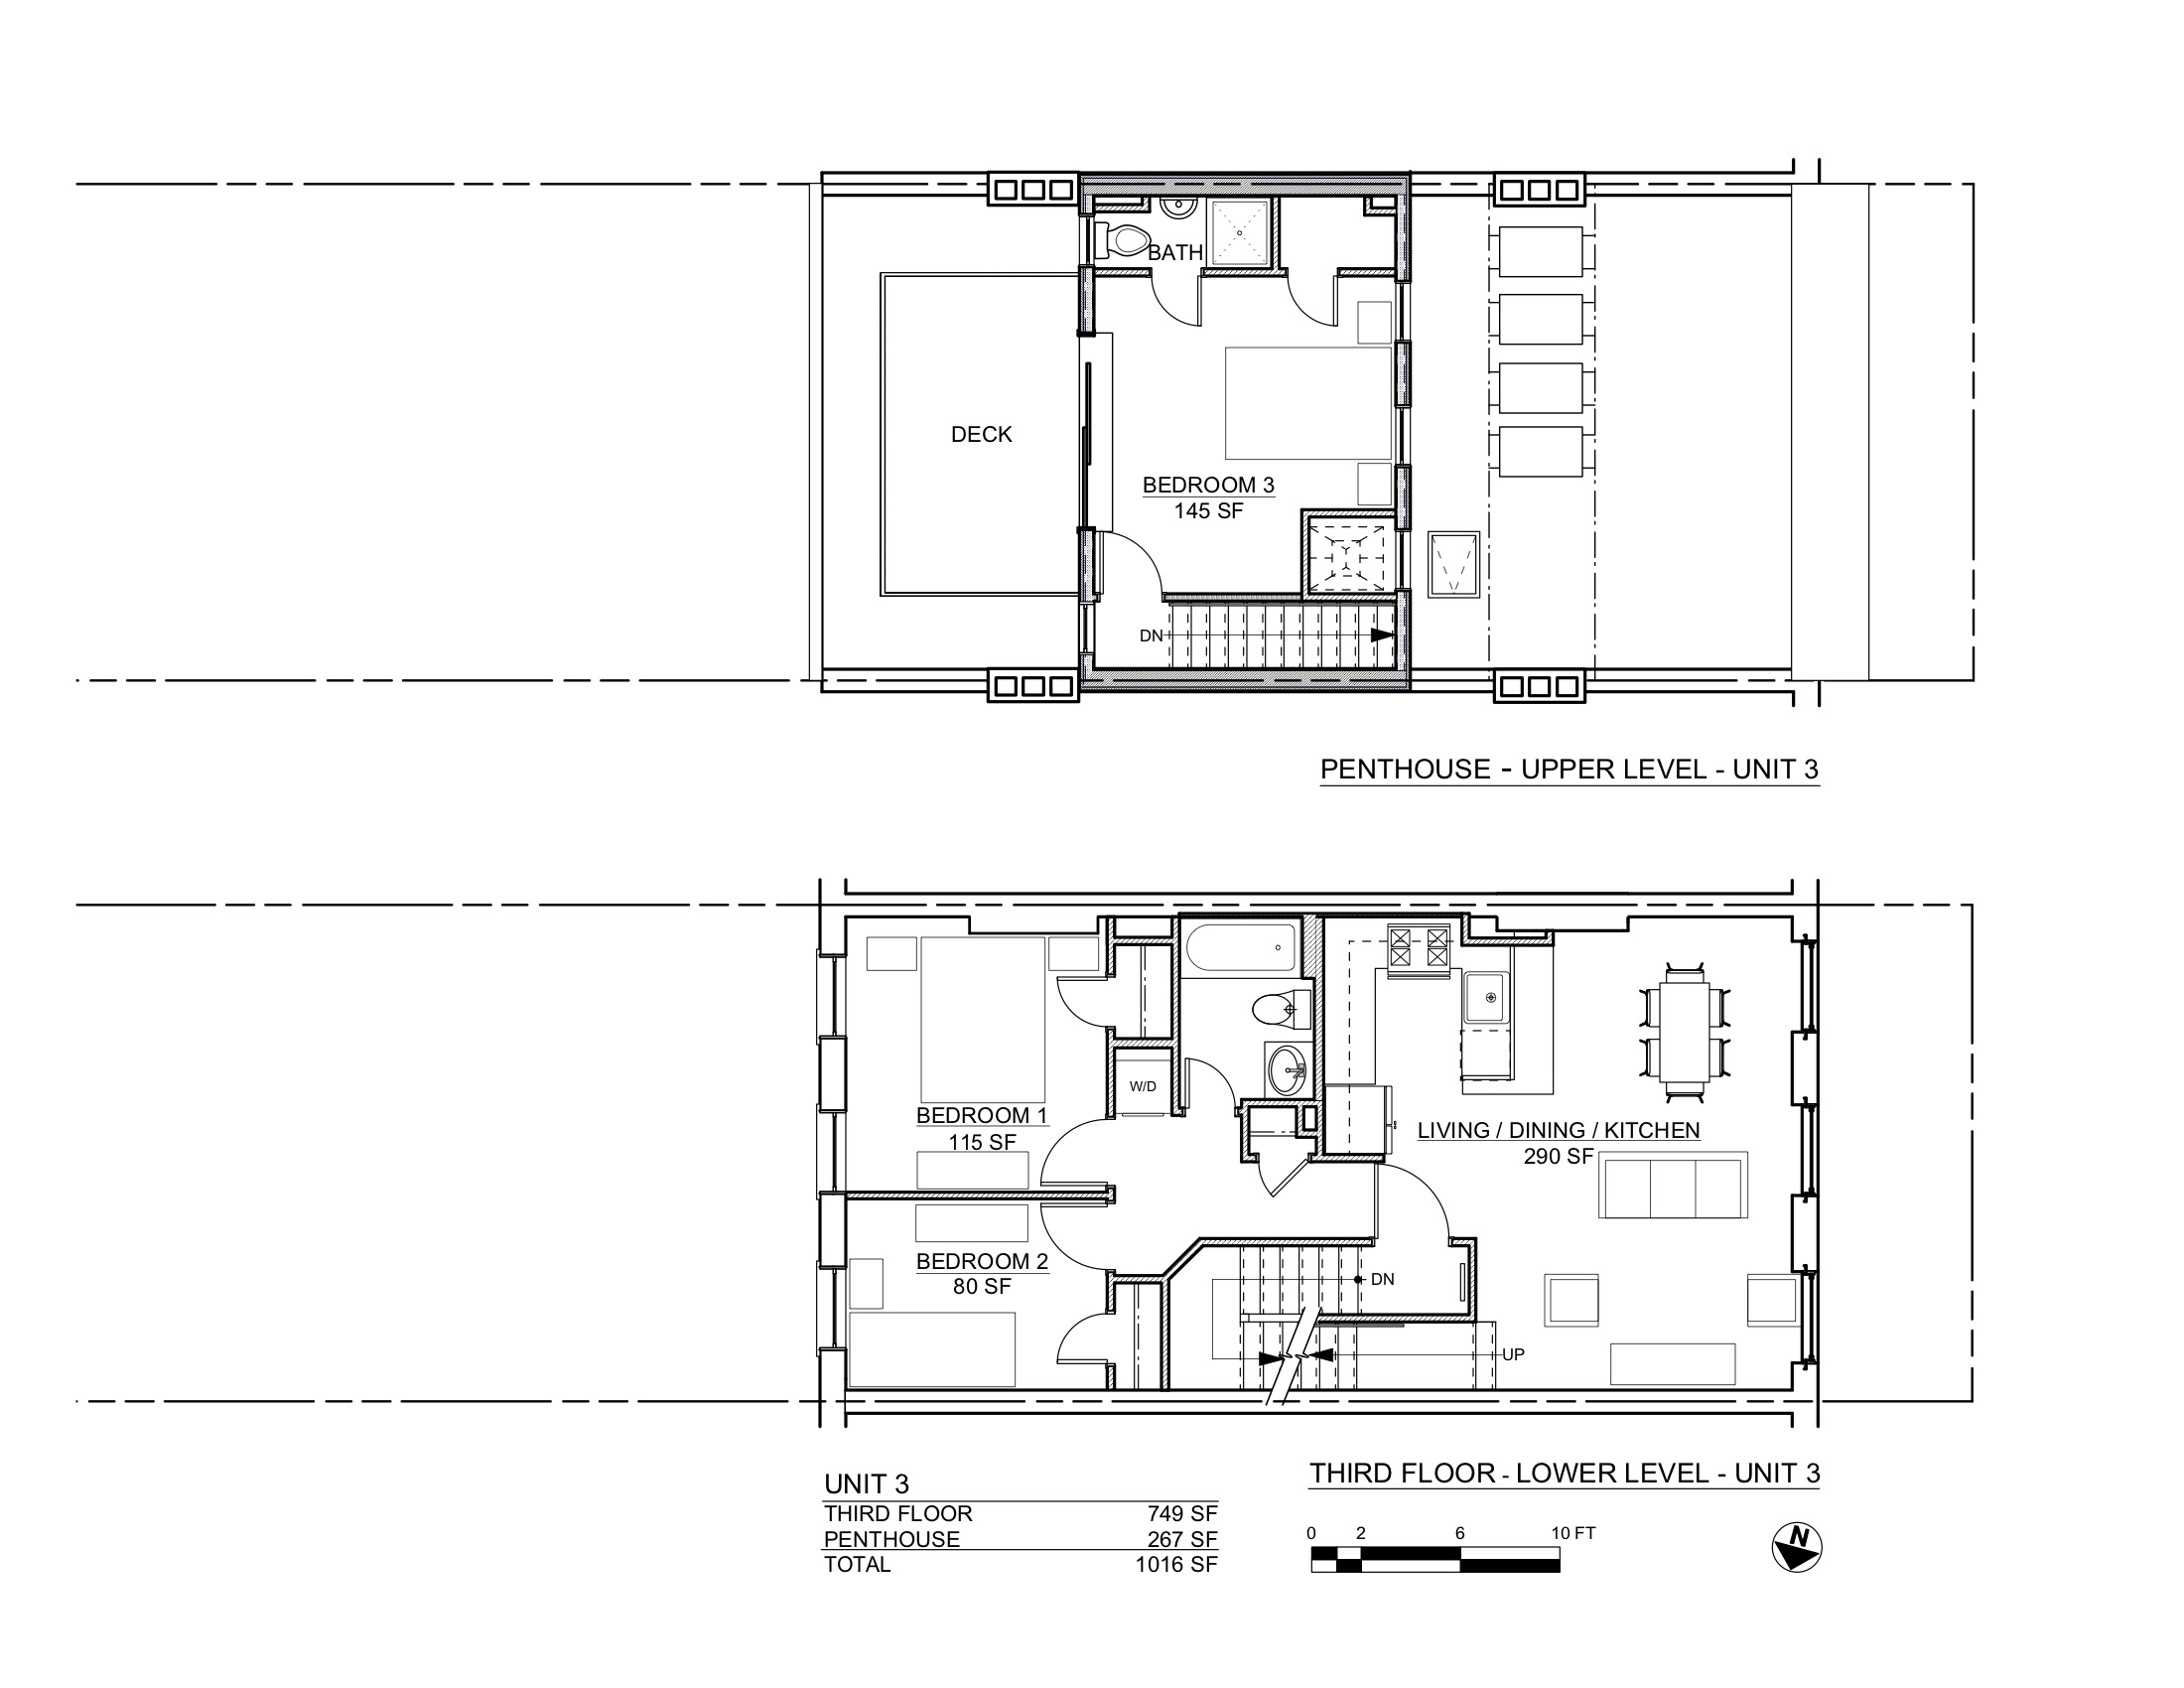 ST JAMES PLANS 3RD & PENTHOUSE FLOORS